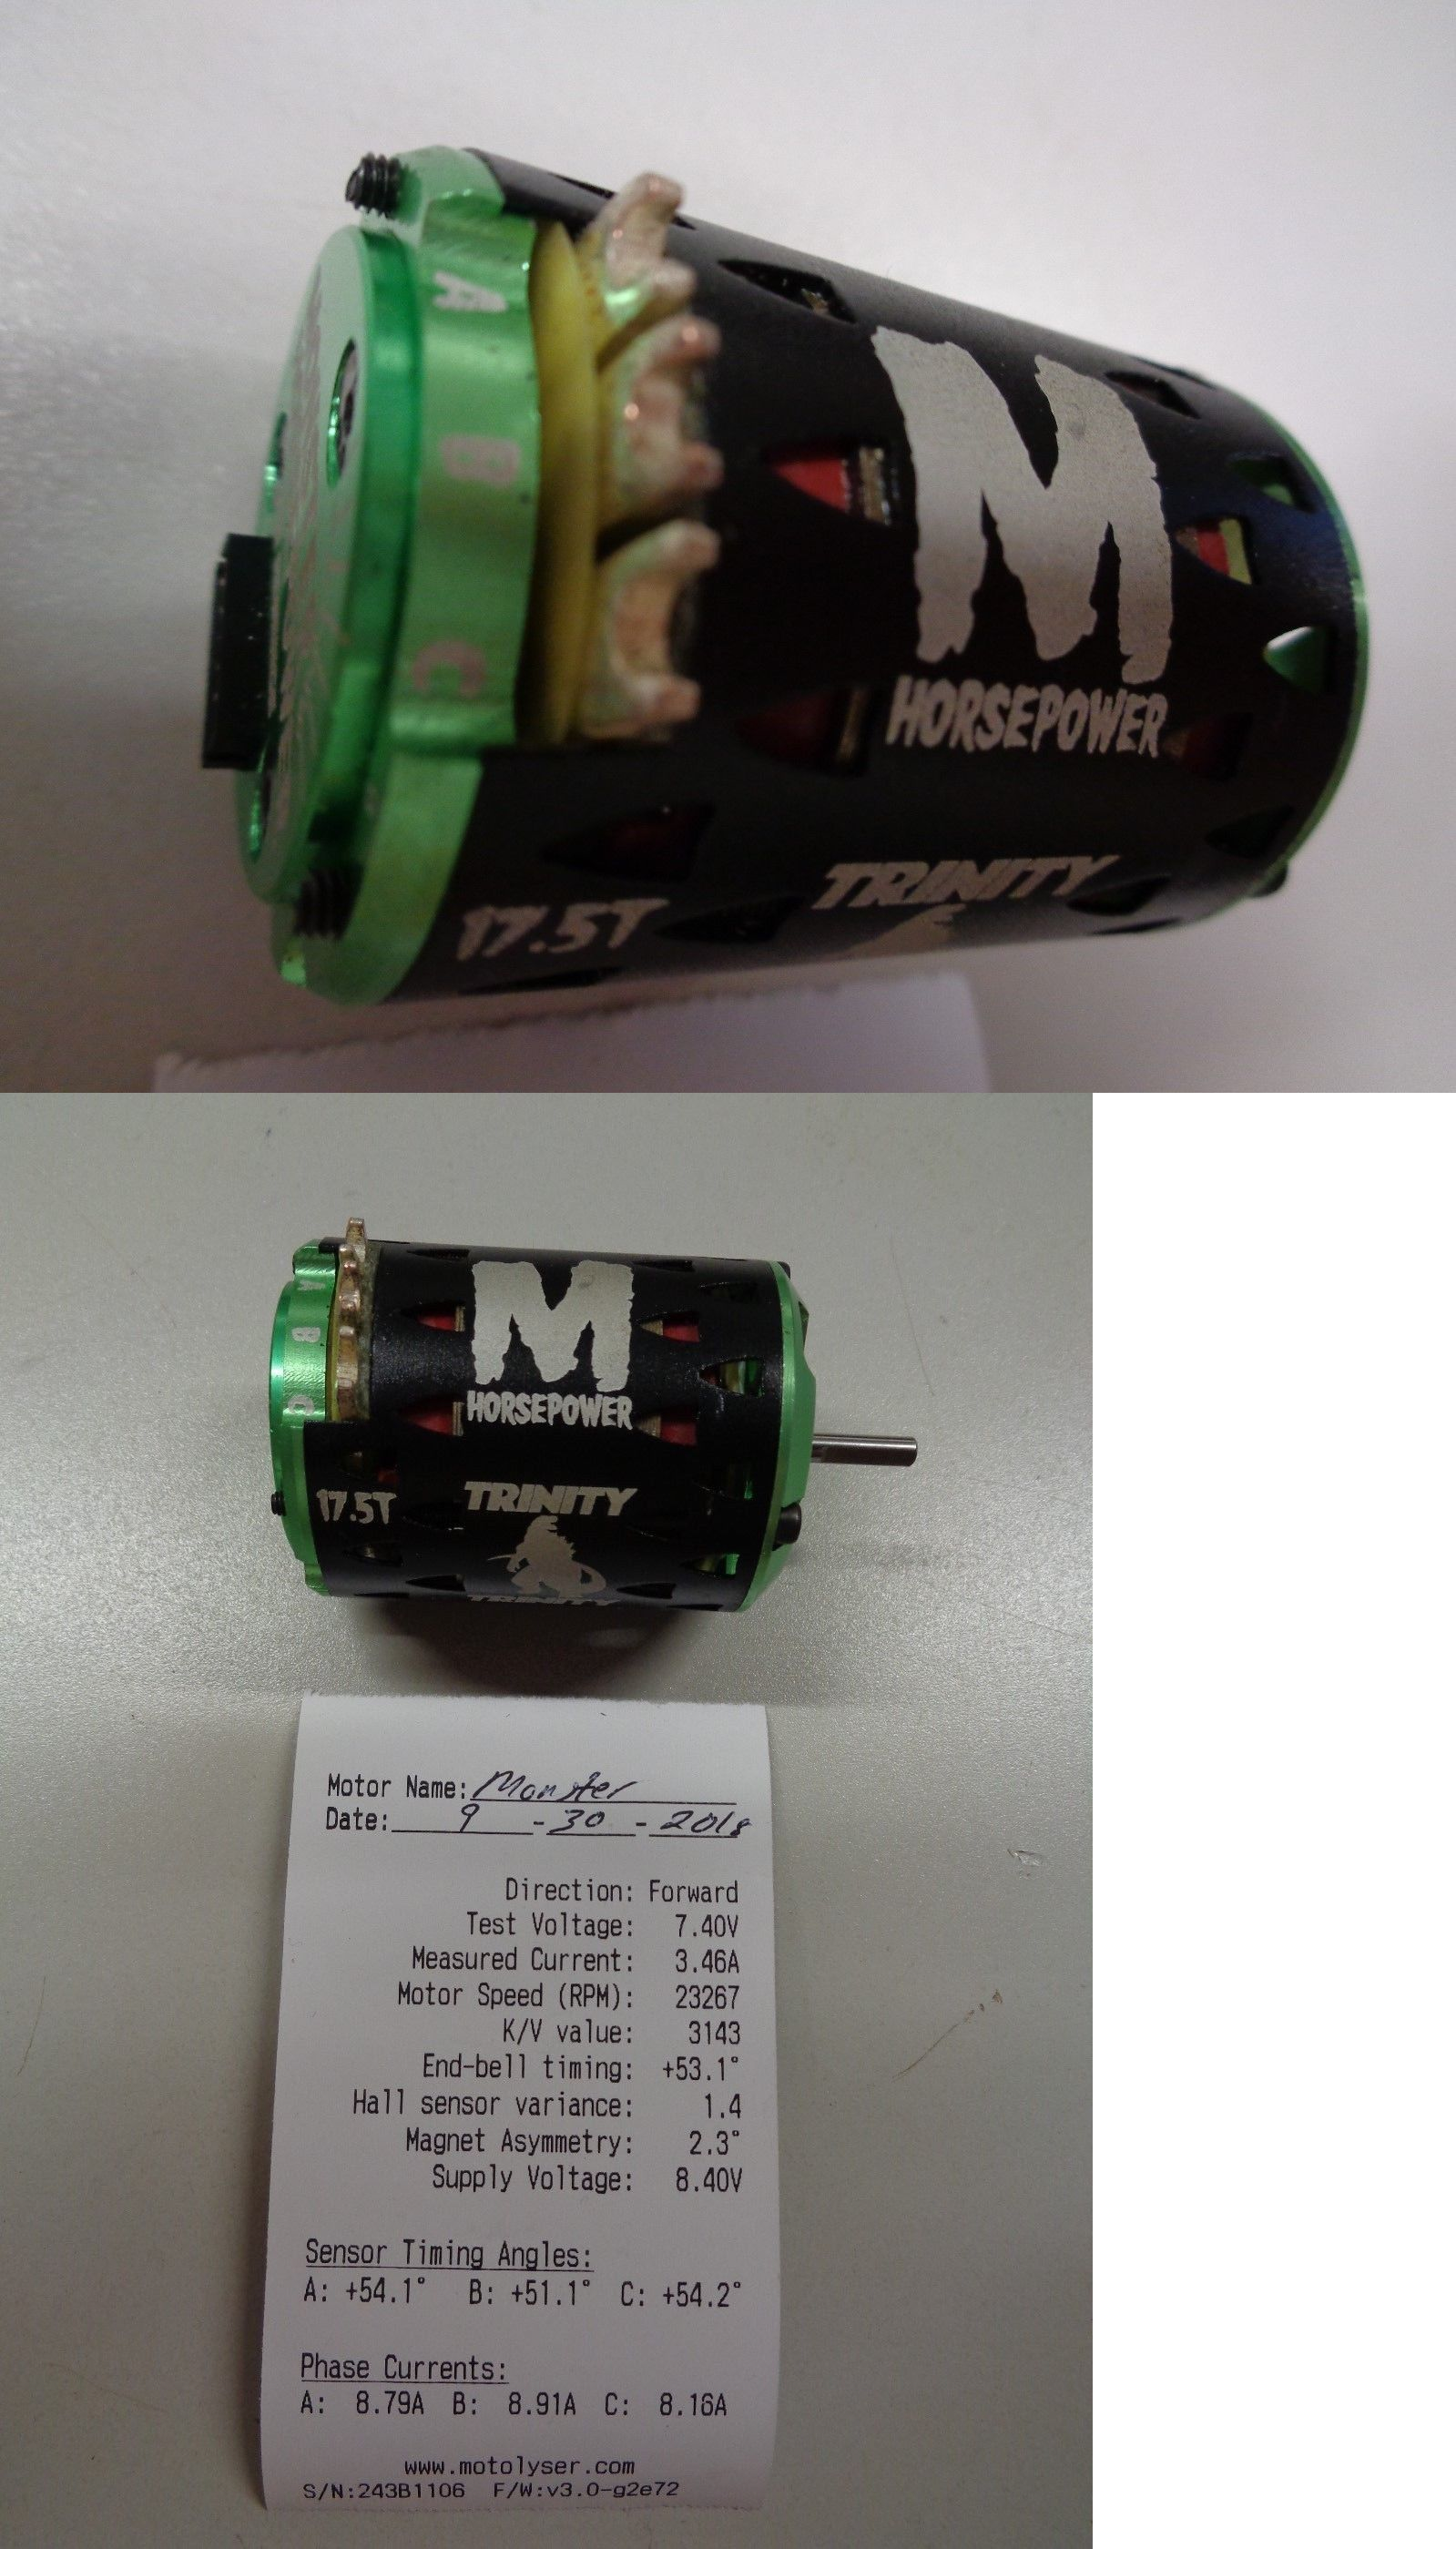 electric motors 100058 new trinity monster 17 5 brushless motor buy it now only 90 on ebay electric motors trinity monster brushless motor [ 1599 x 2799 Pixel ]